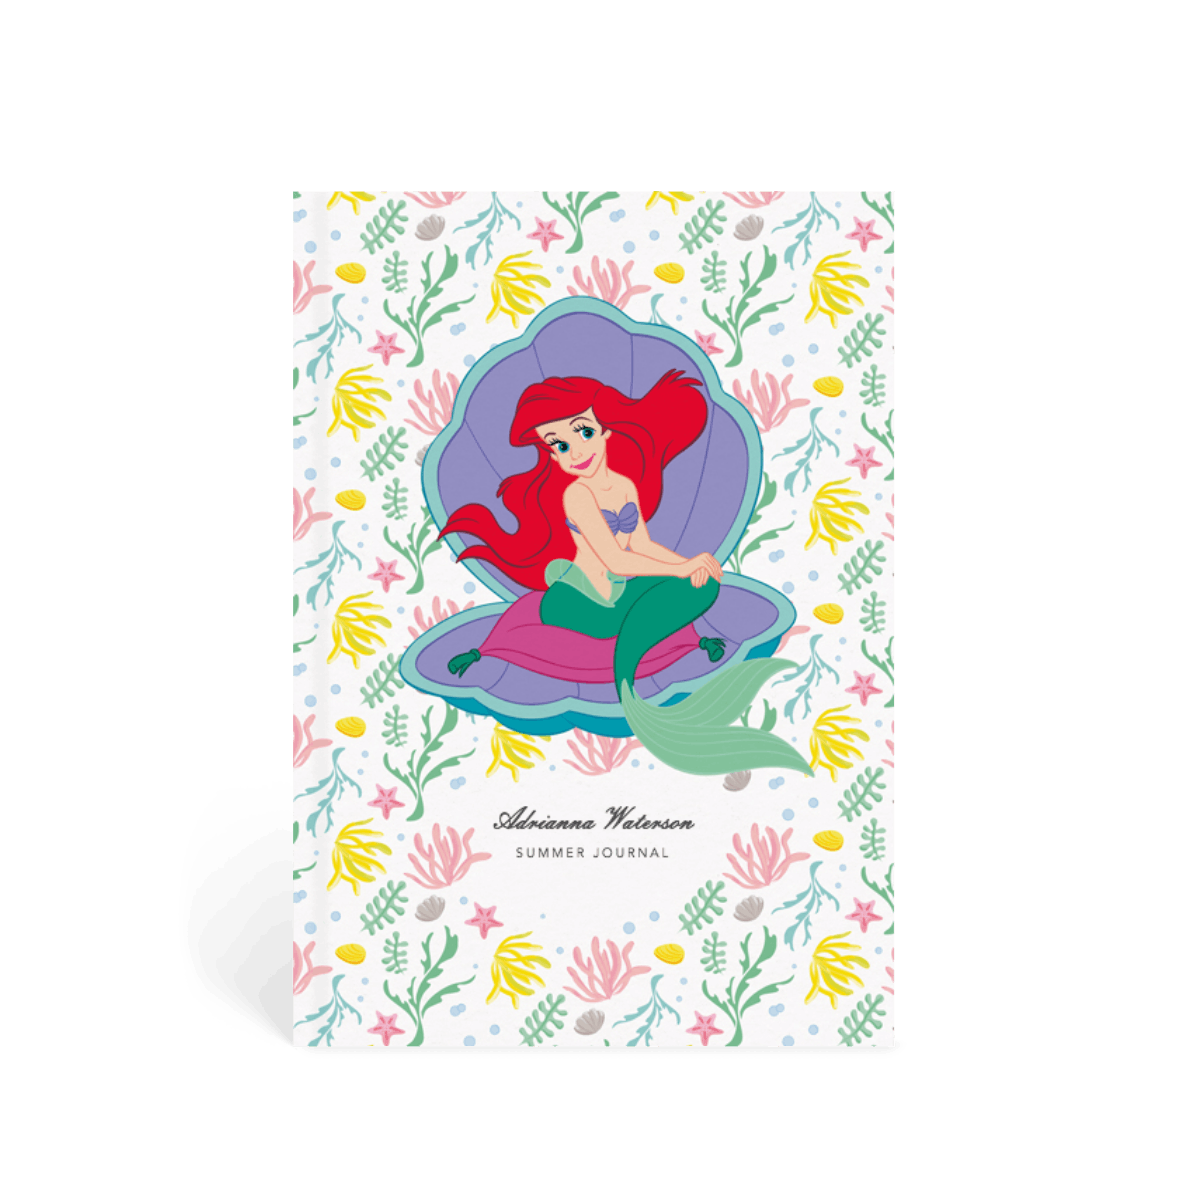 Https%3a%2f%2fwww.papier.com%2fproduct image%2f48026%2f25%2fthe little mermaid 11767 front 1539098791.png?ixlib=rb 1.1